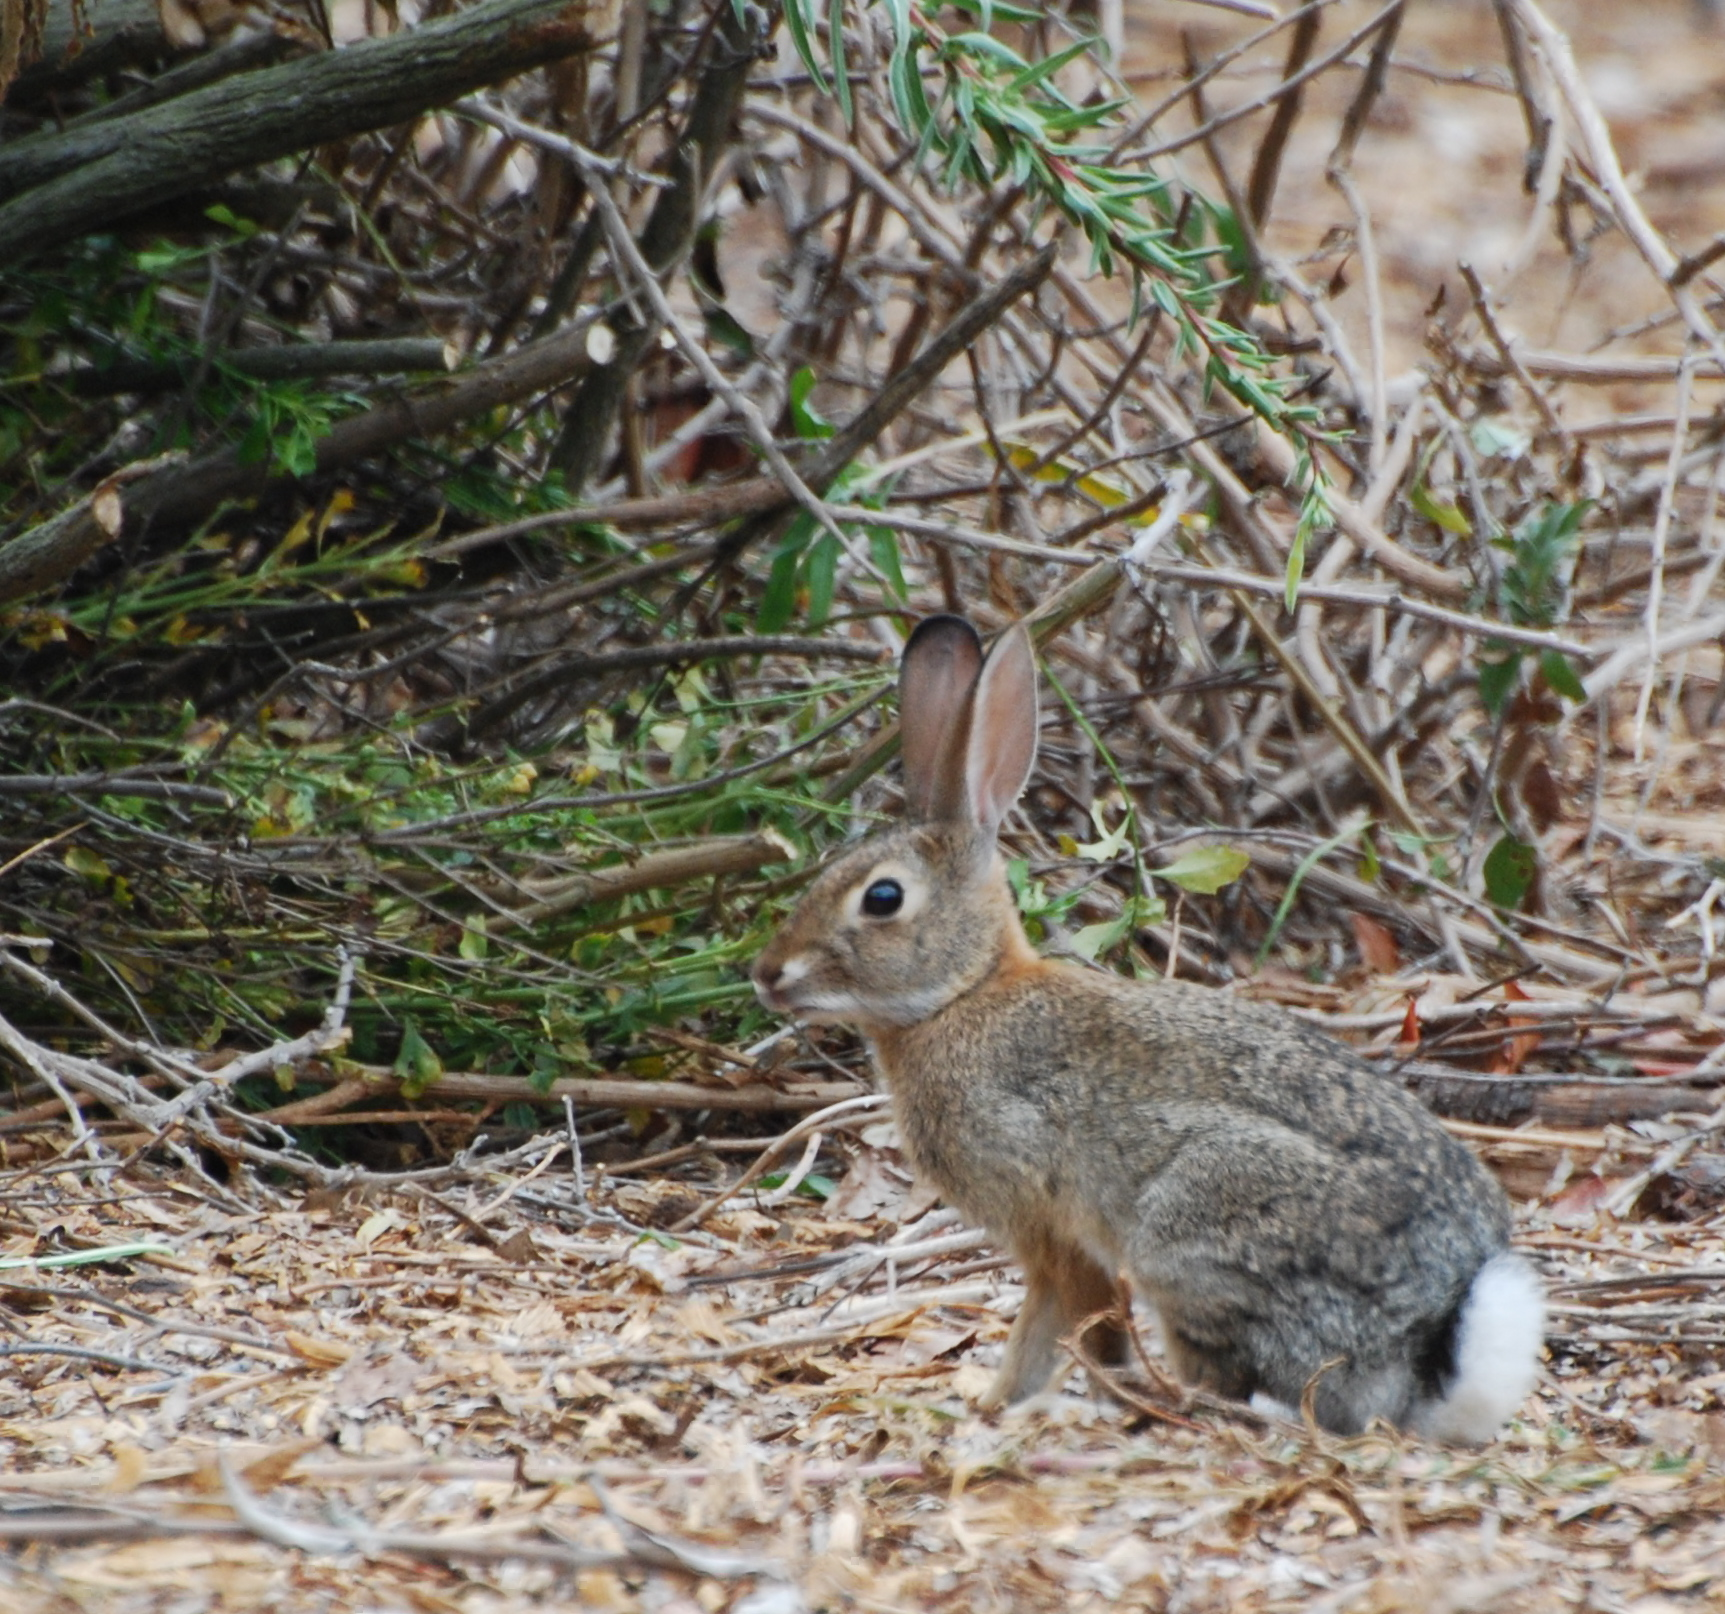 Cottontail Rabbit171325.tmp/orangebutterfly.JPG